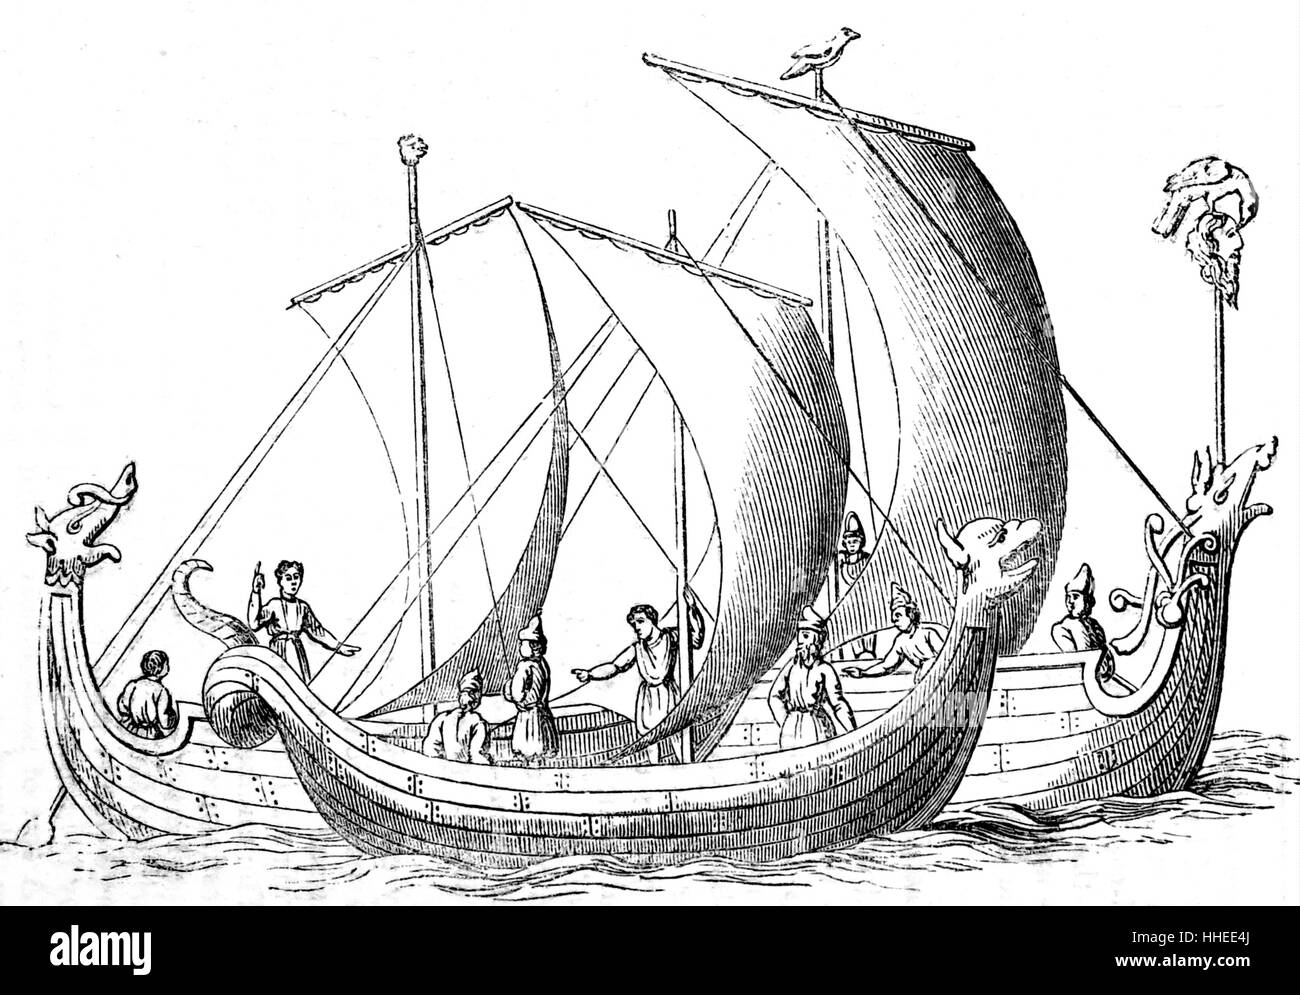 Portrait of an Anglo-Saxon boat. Dated 19th Century - Stock Image